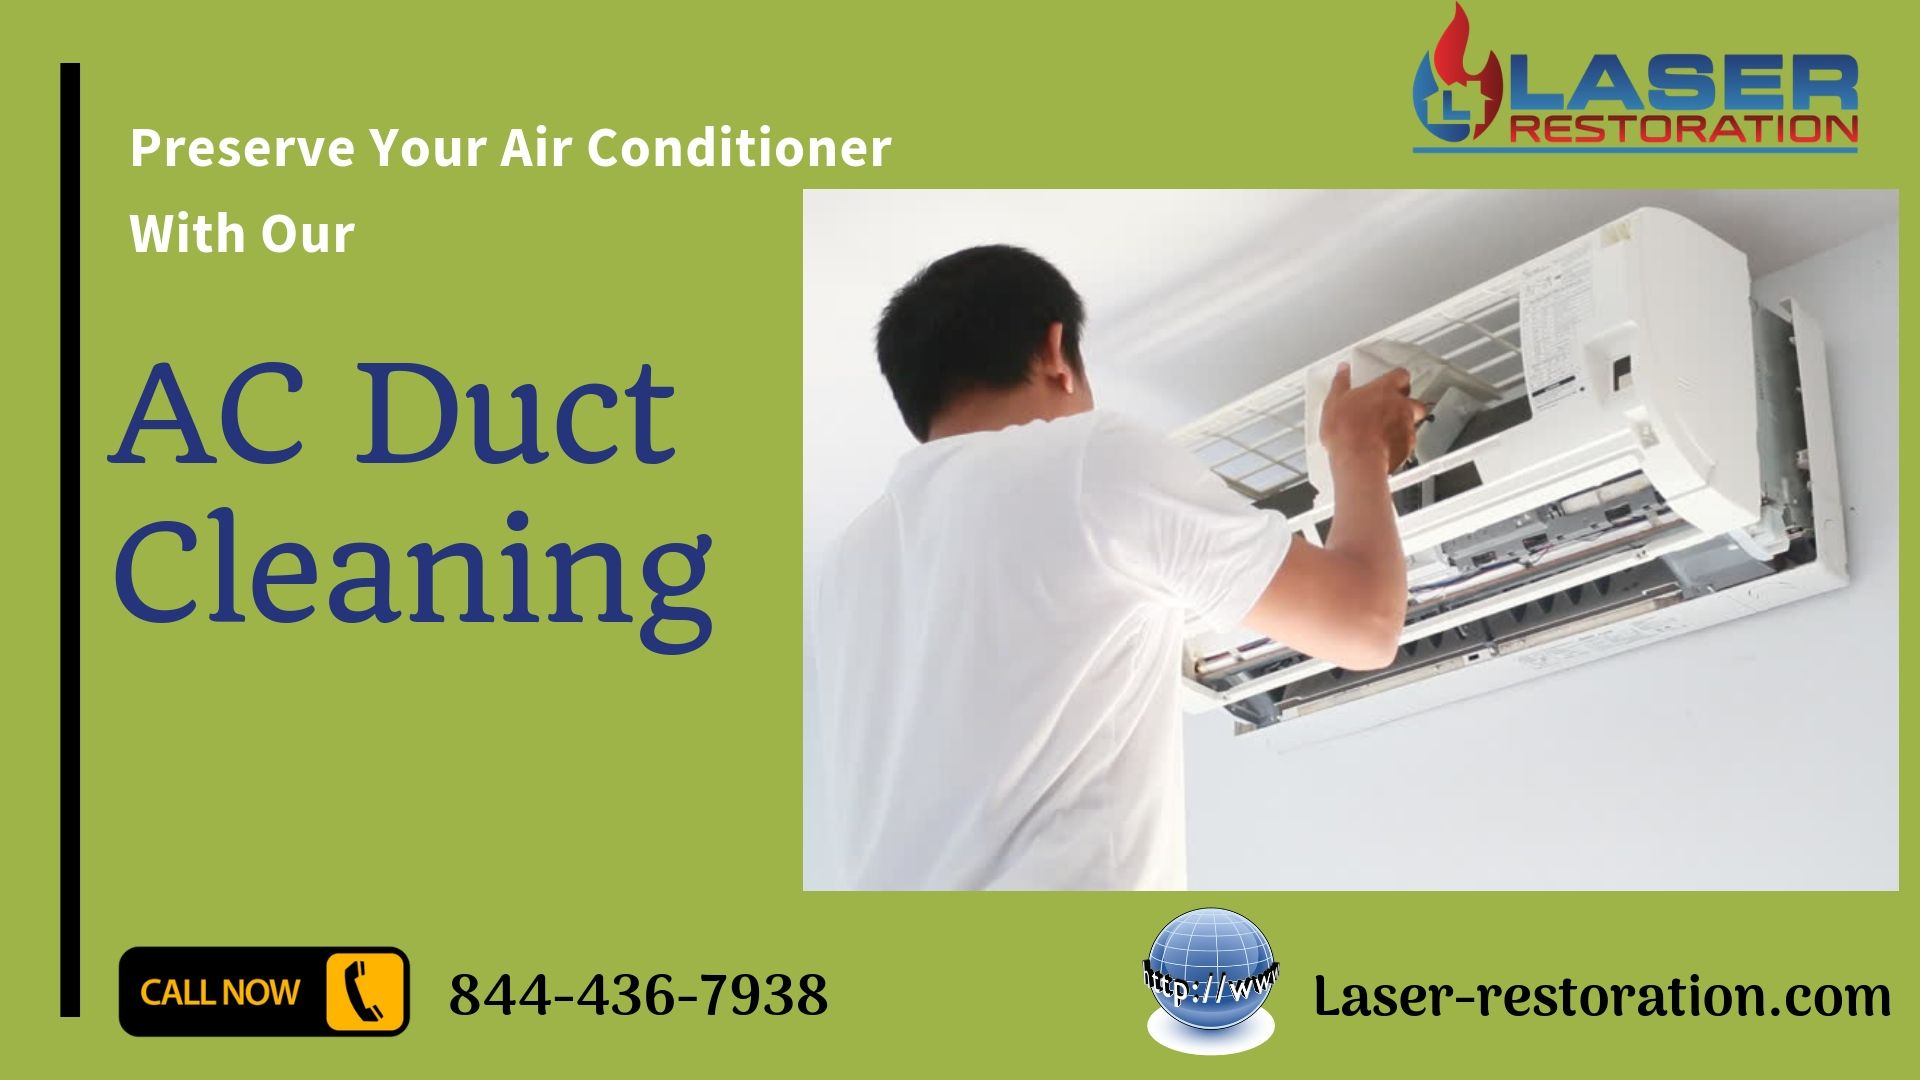 Preserve Your Air Conditioner With Our Expert AC Duct